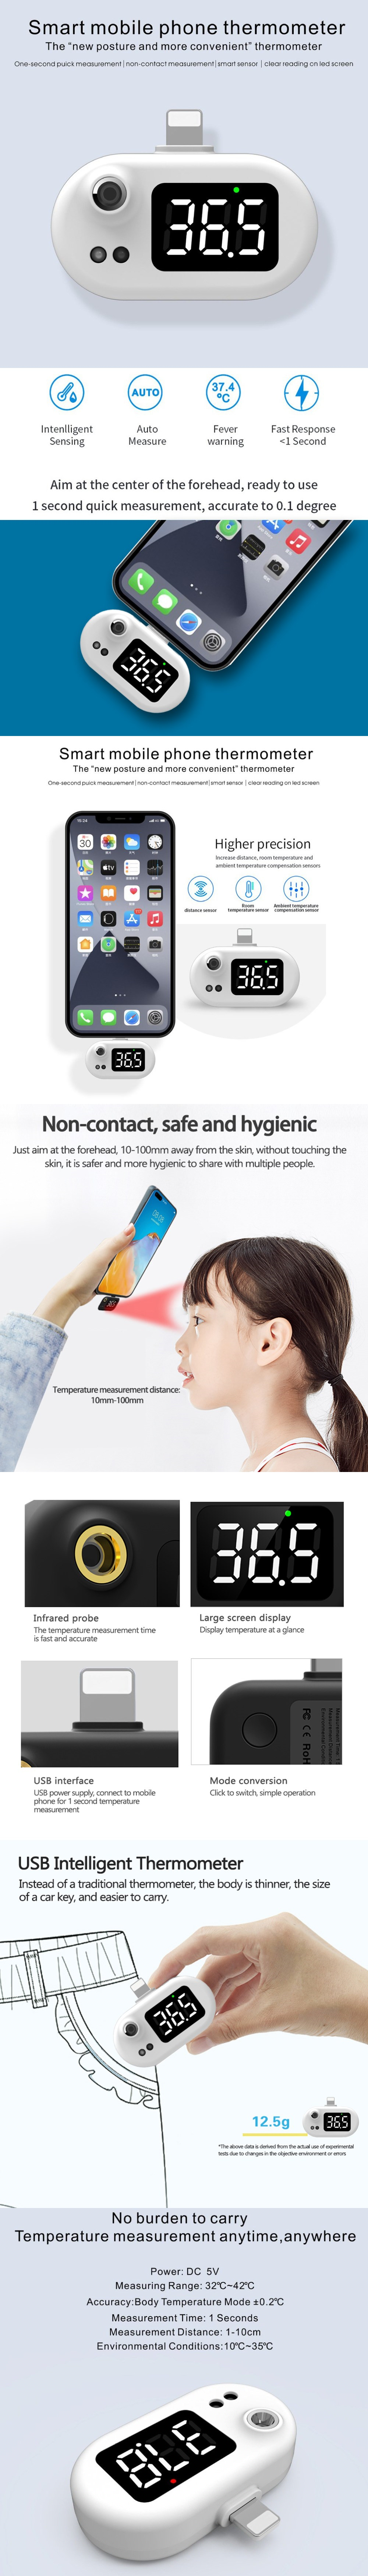 Non-contact Type Infrared USB Smart Thermometer for iphone 12 pro max / 11 / X - White